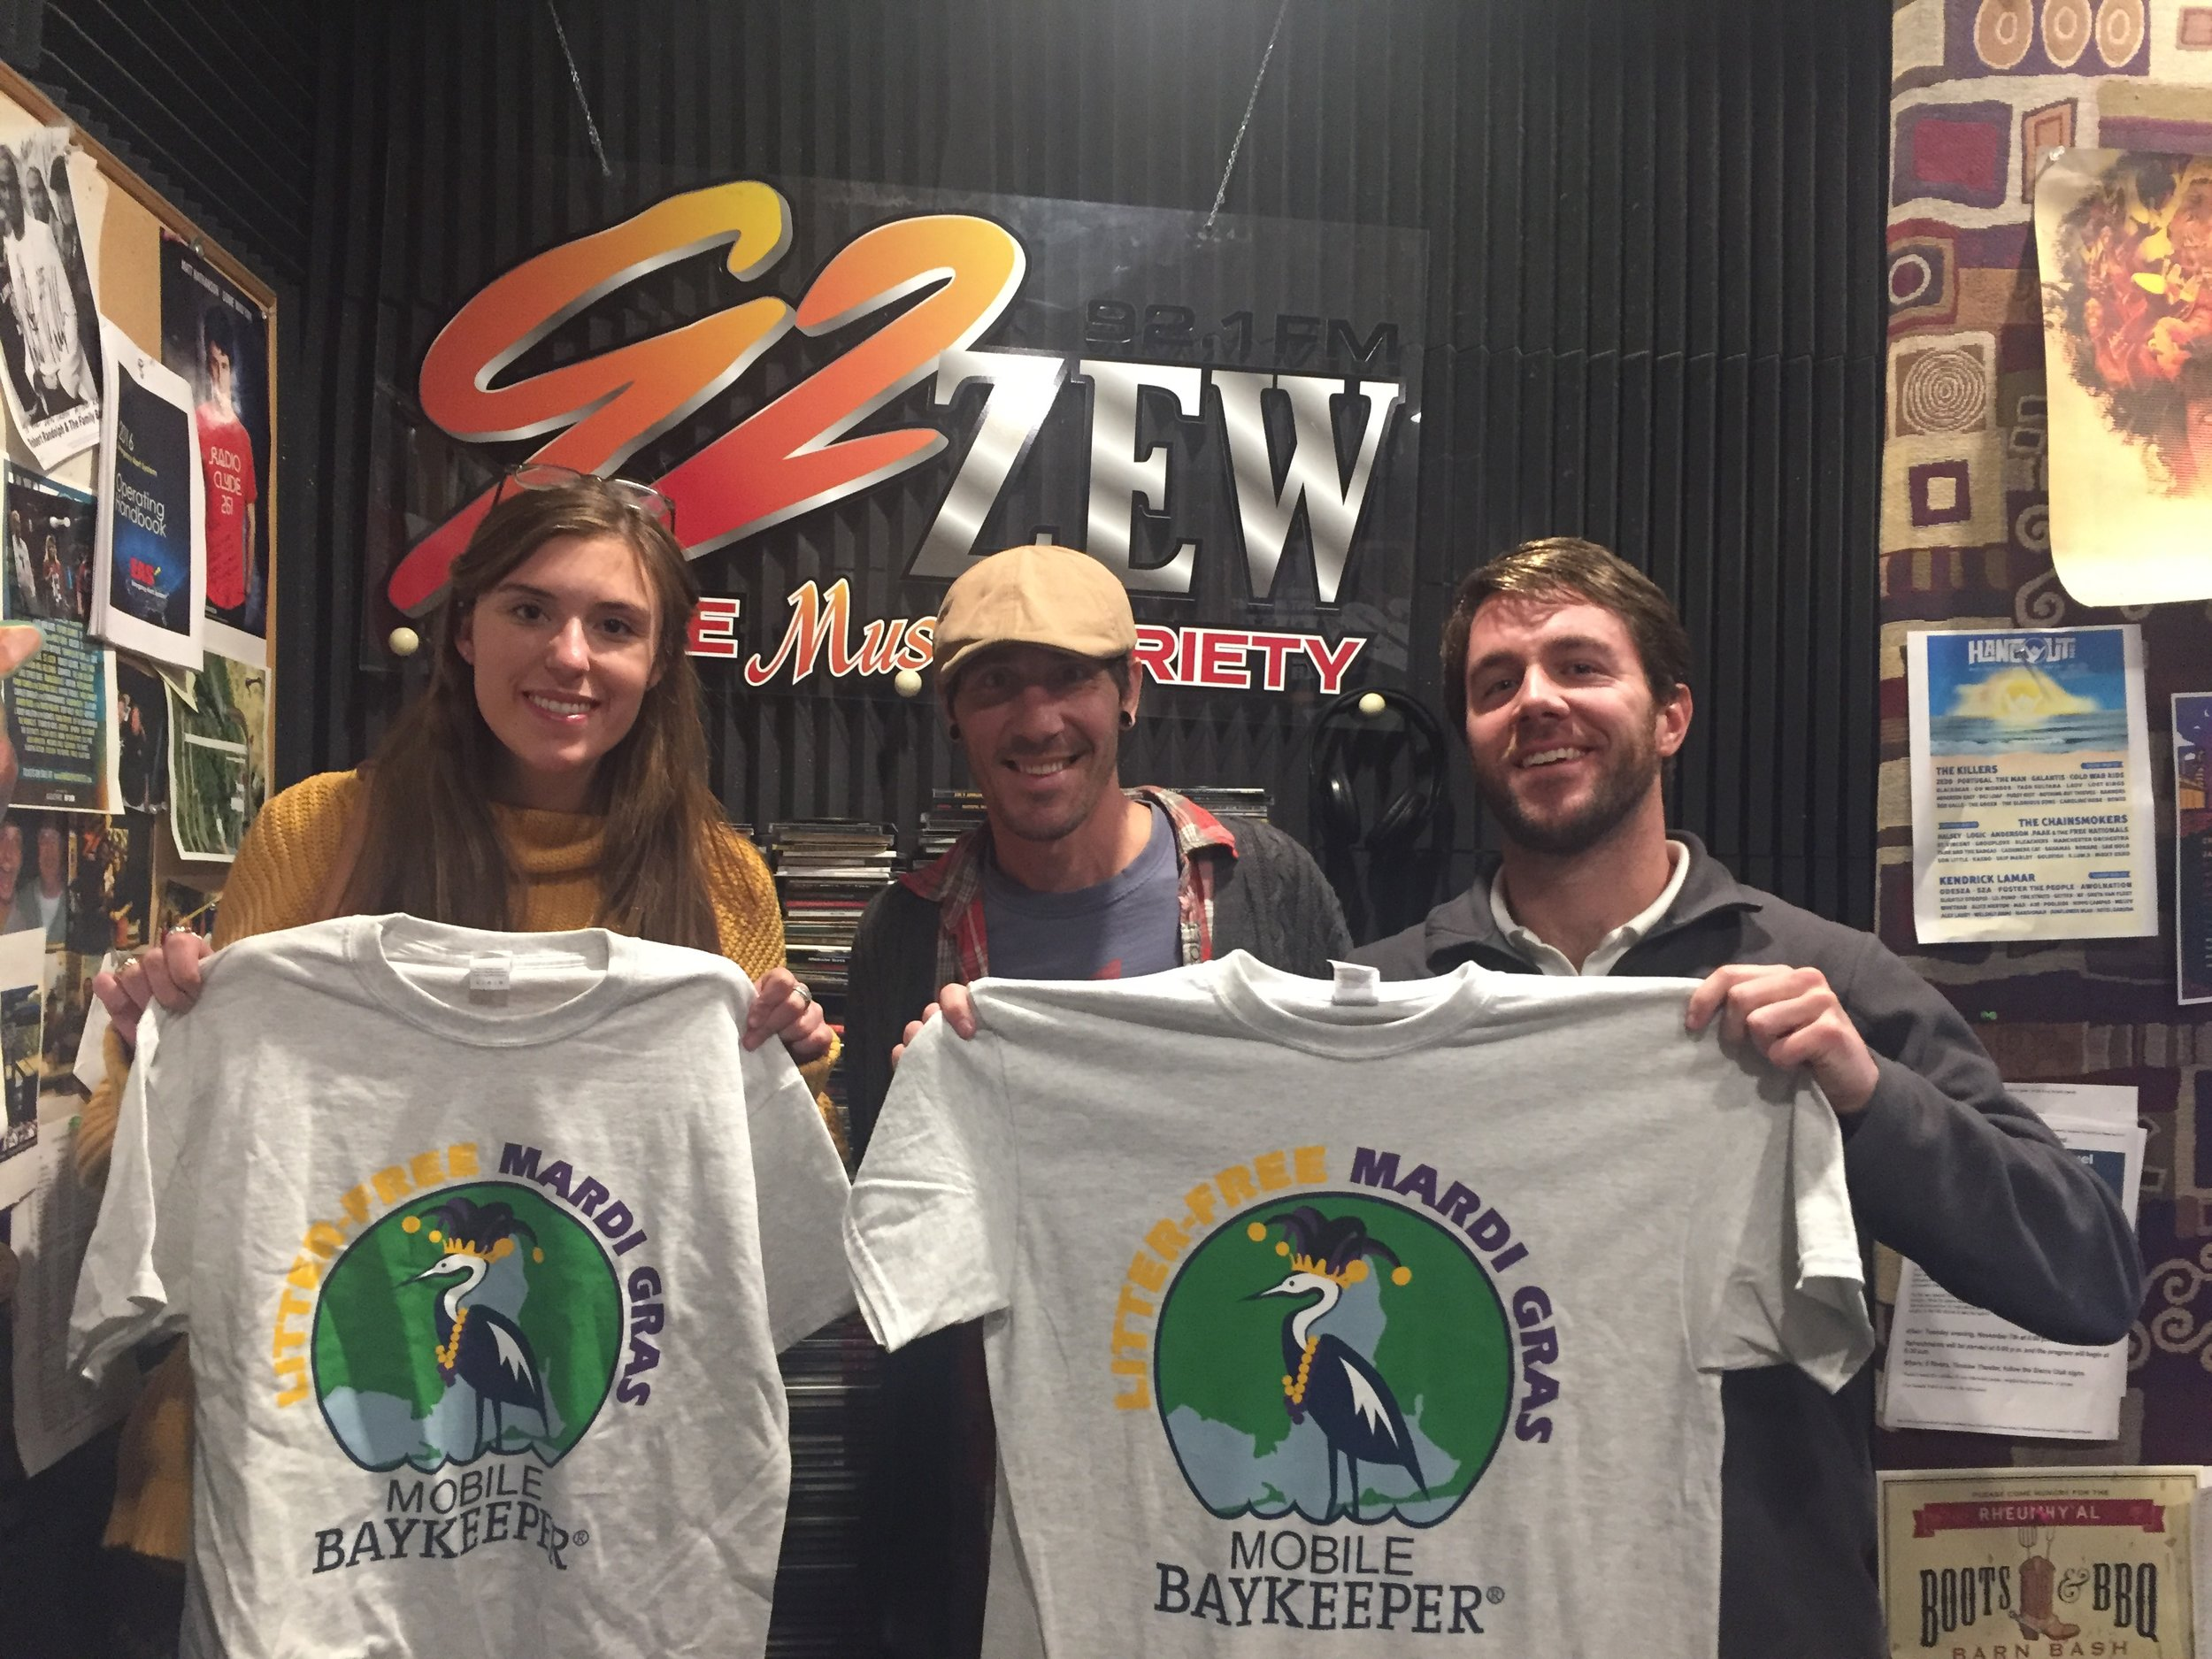 Above: Adele joins Communications Director Hanlon Walsh for a radio interview on 92 ZEW promoting Mobile Baykeeper's Litter-Free Mardi Gras Campaign.   Click here   to learn more!